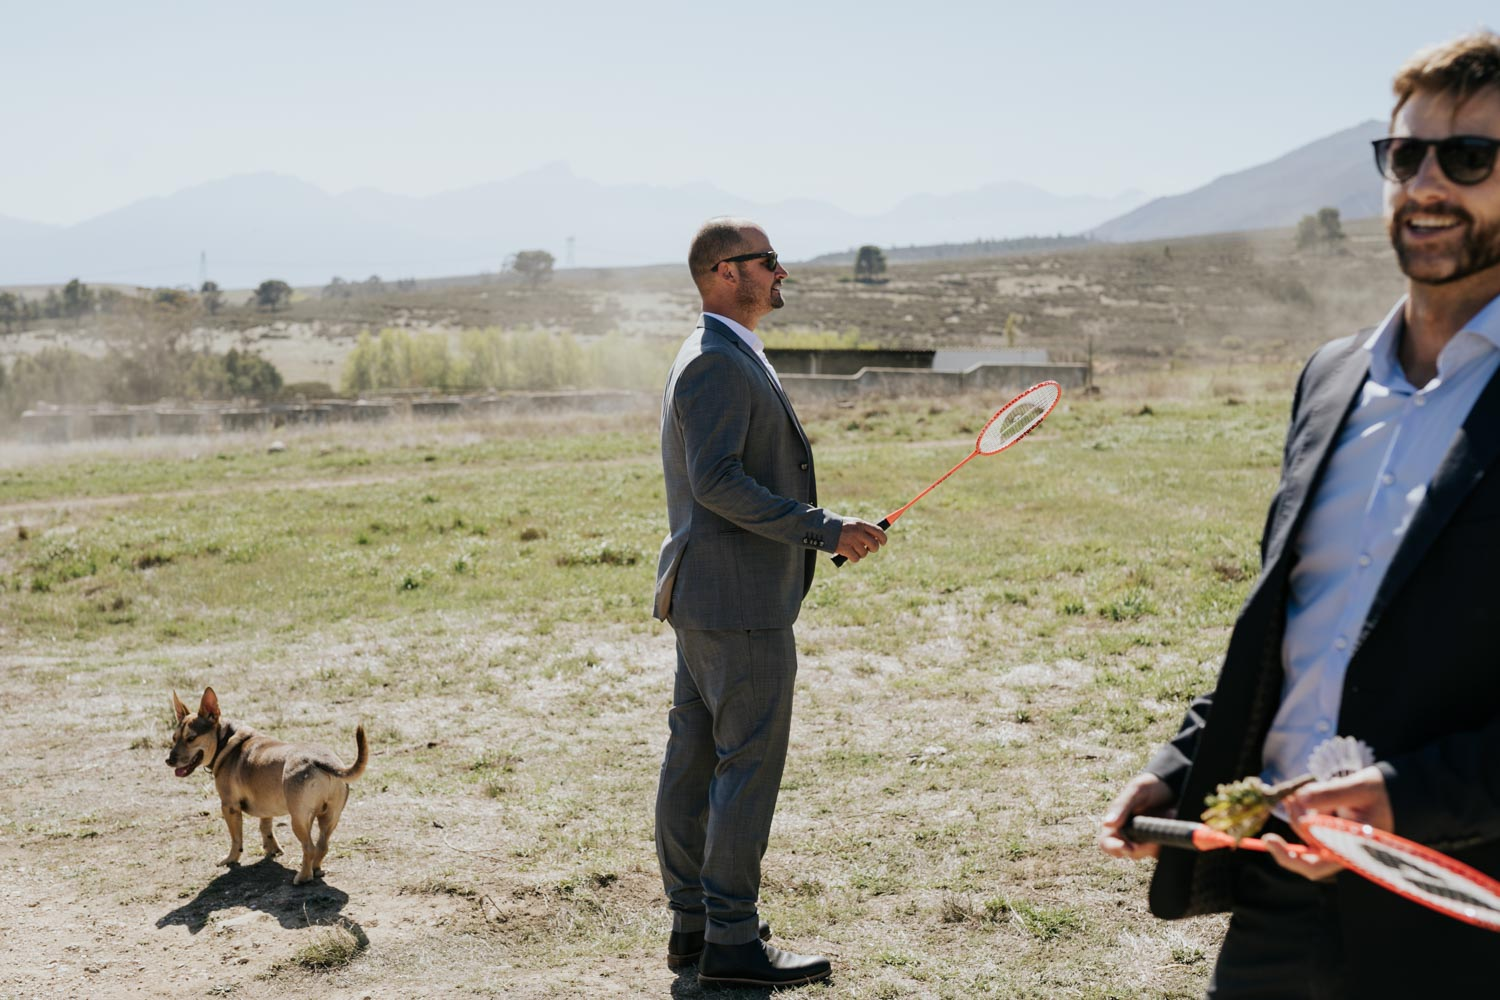 Groom and his best man hanging out with his dog and playing badminton before he gets married on his farm in Tulbagh